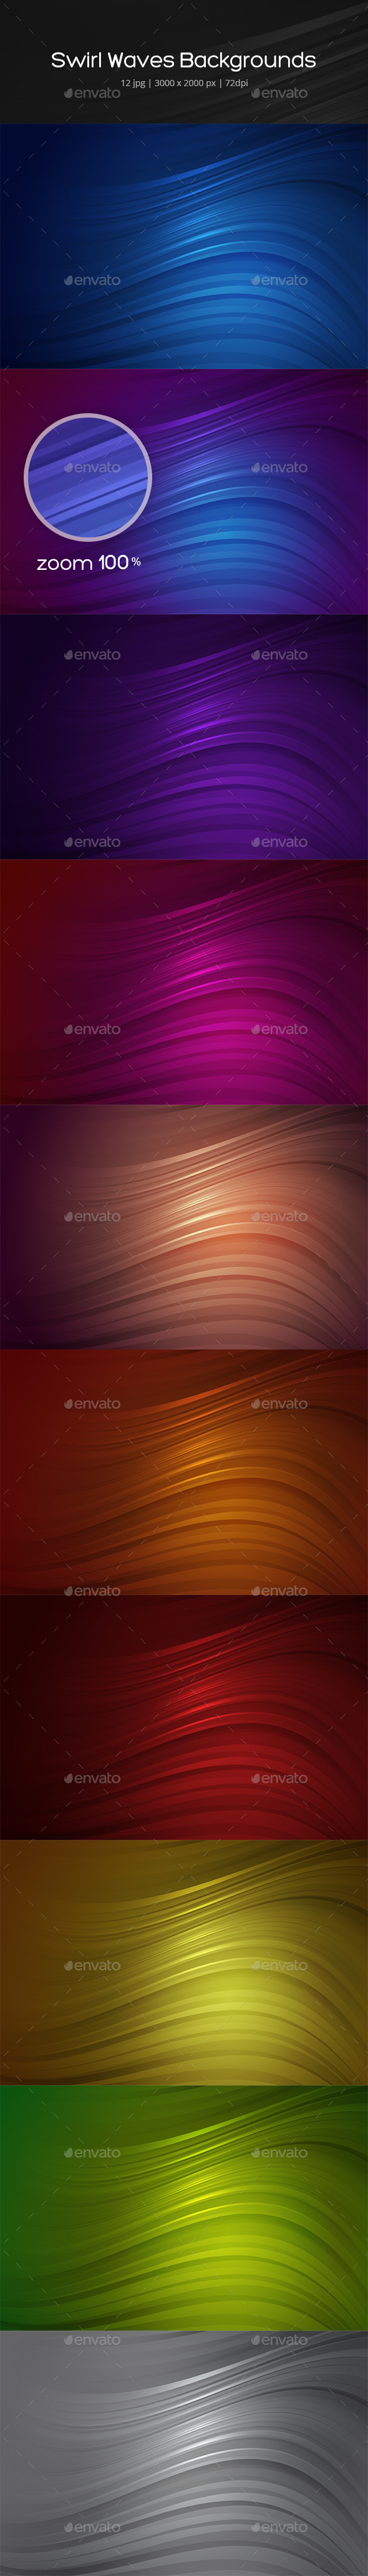 Swirl Waves Backgrounds - Abstract Backgrounds